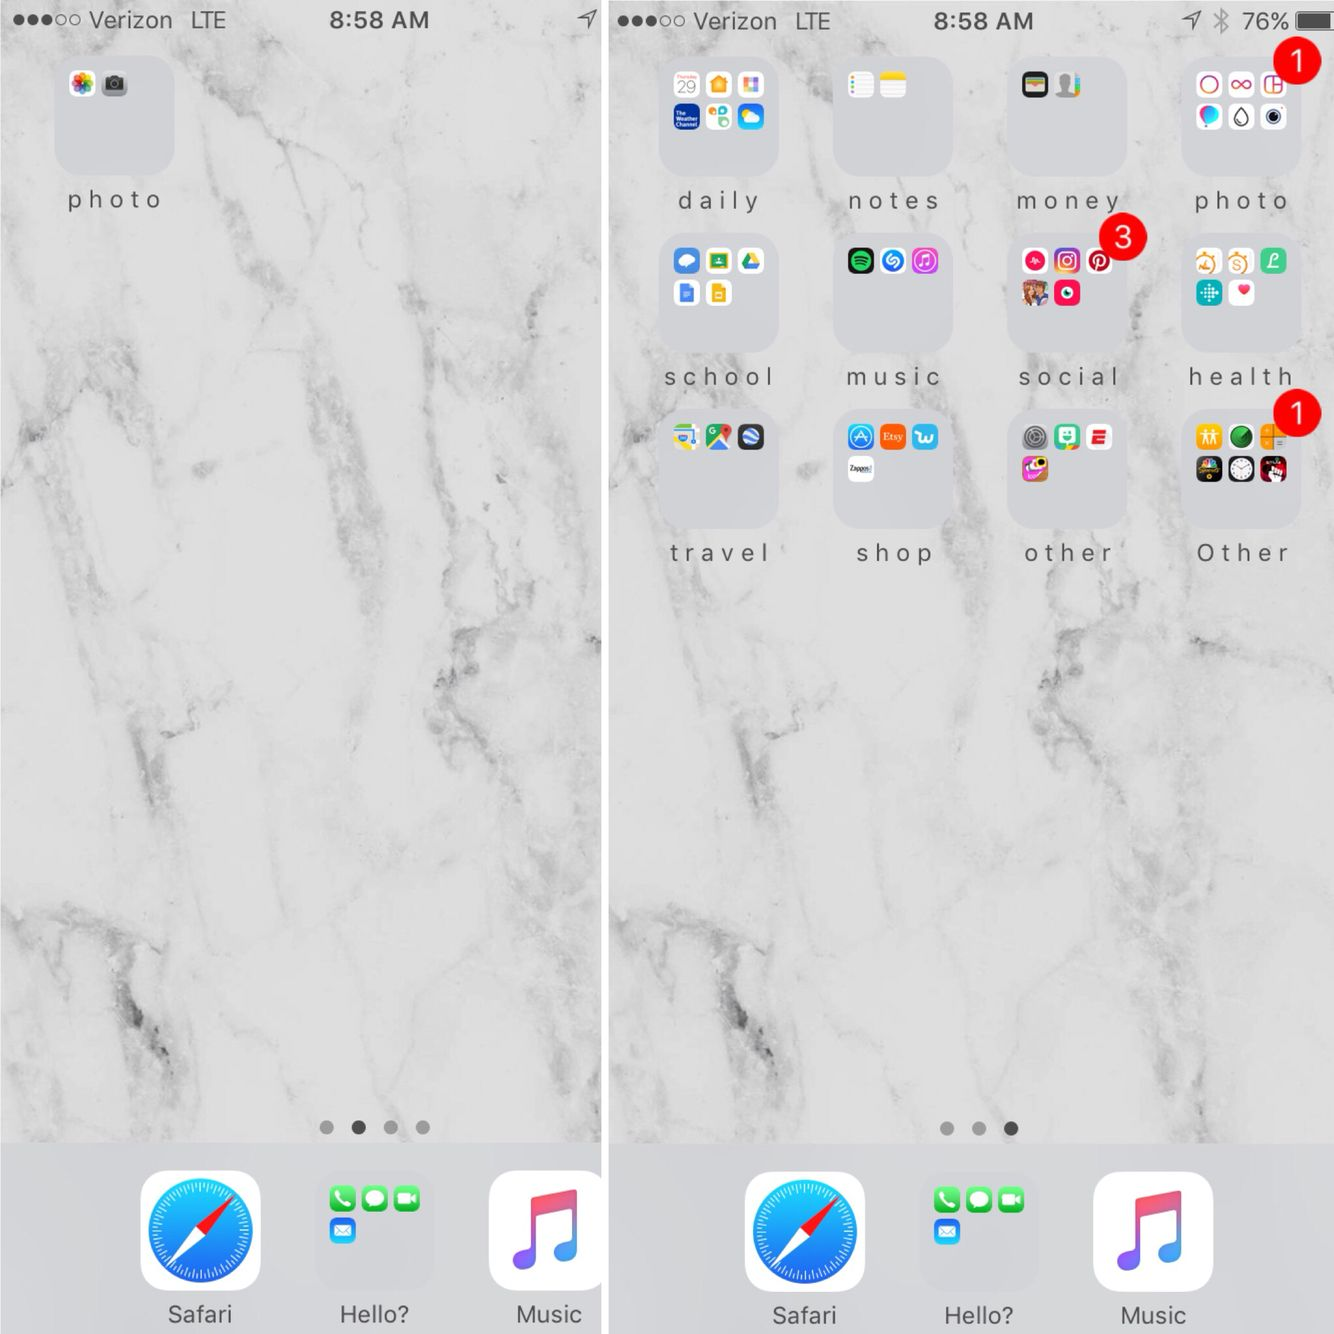 Phone Organization Great Way To Stay Organized Iphone Organization Organization Apps Organize Phone Apps